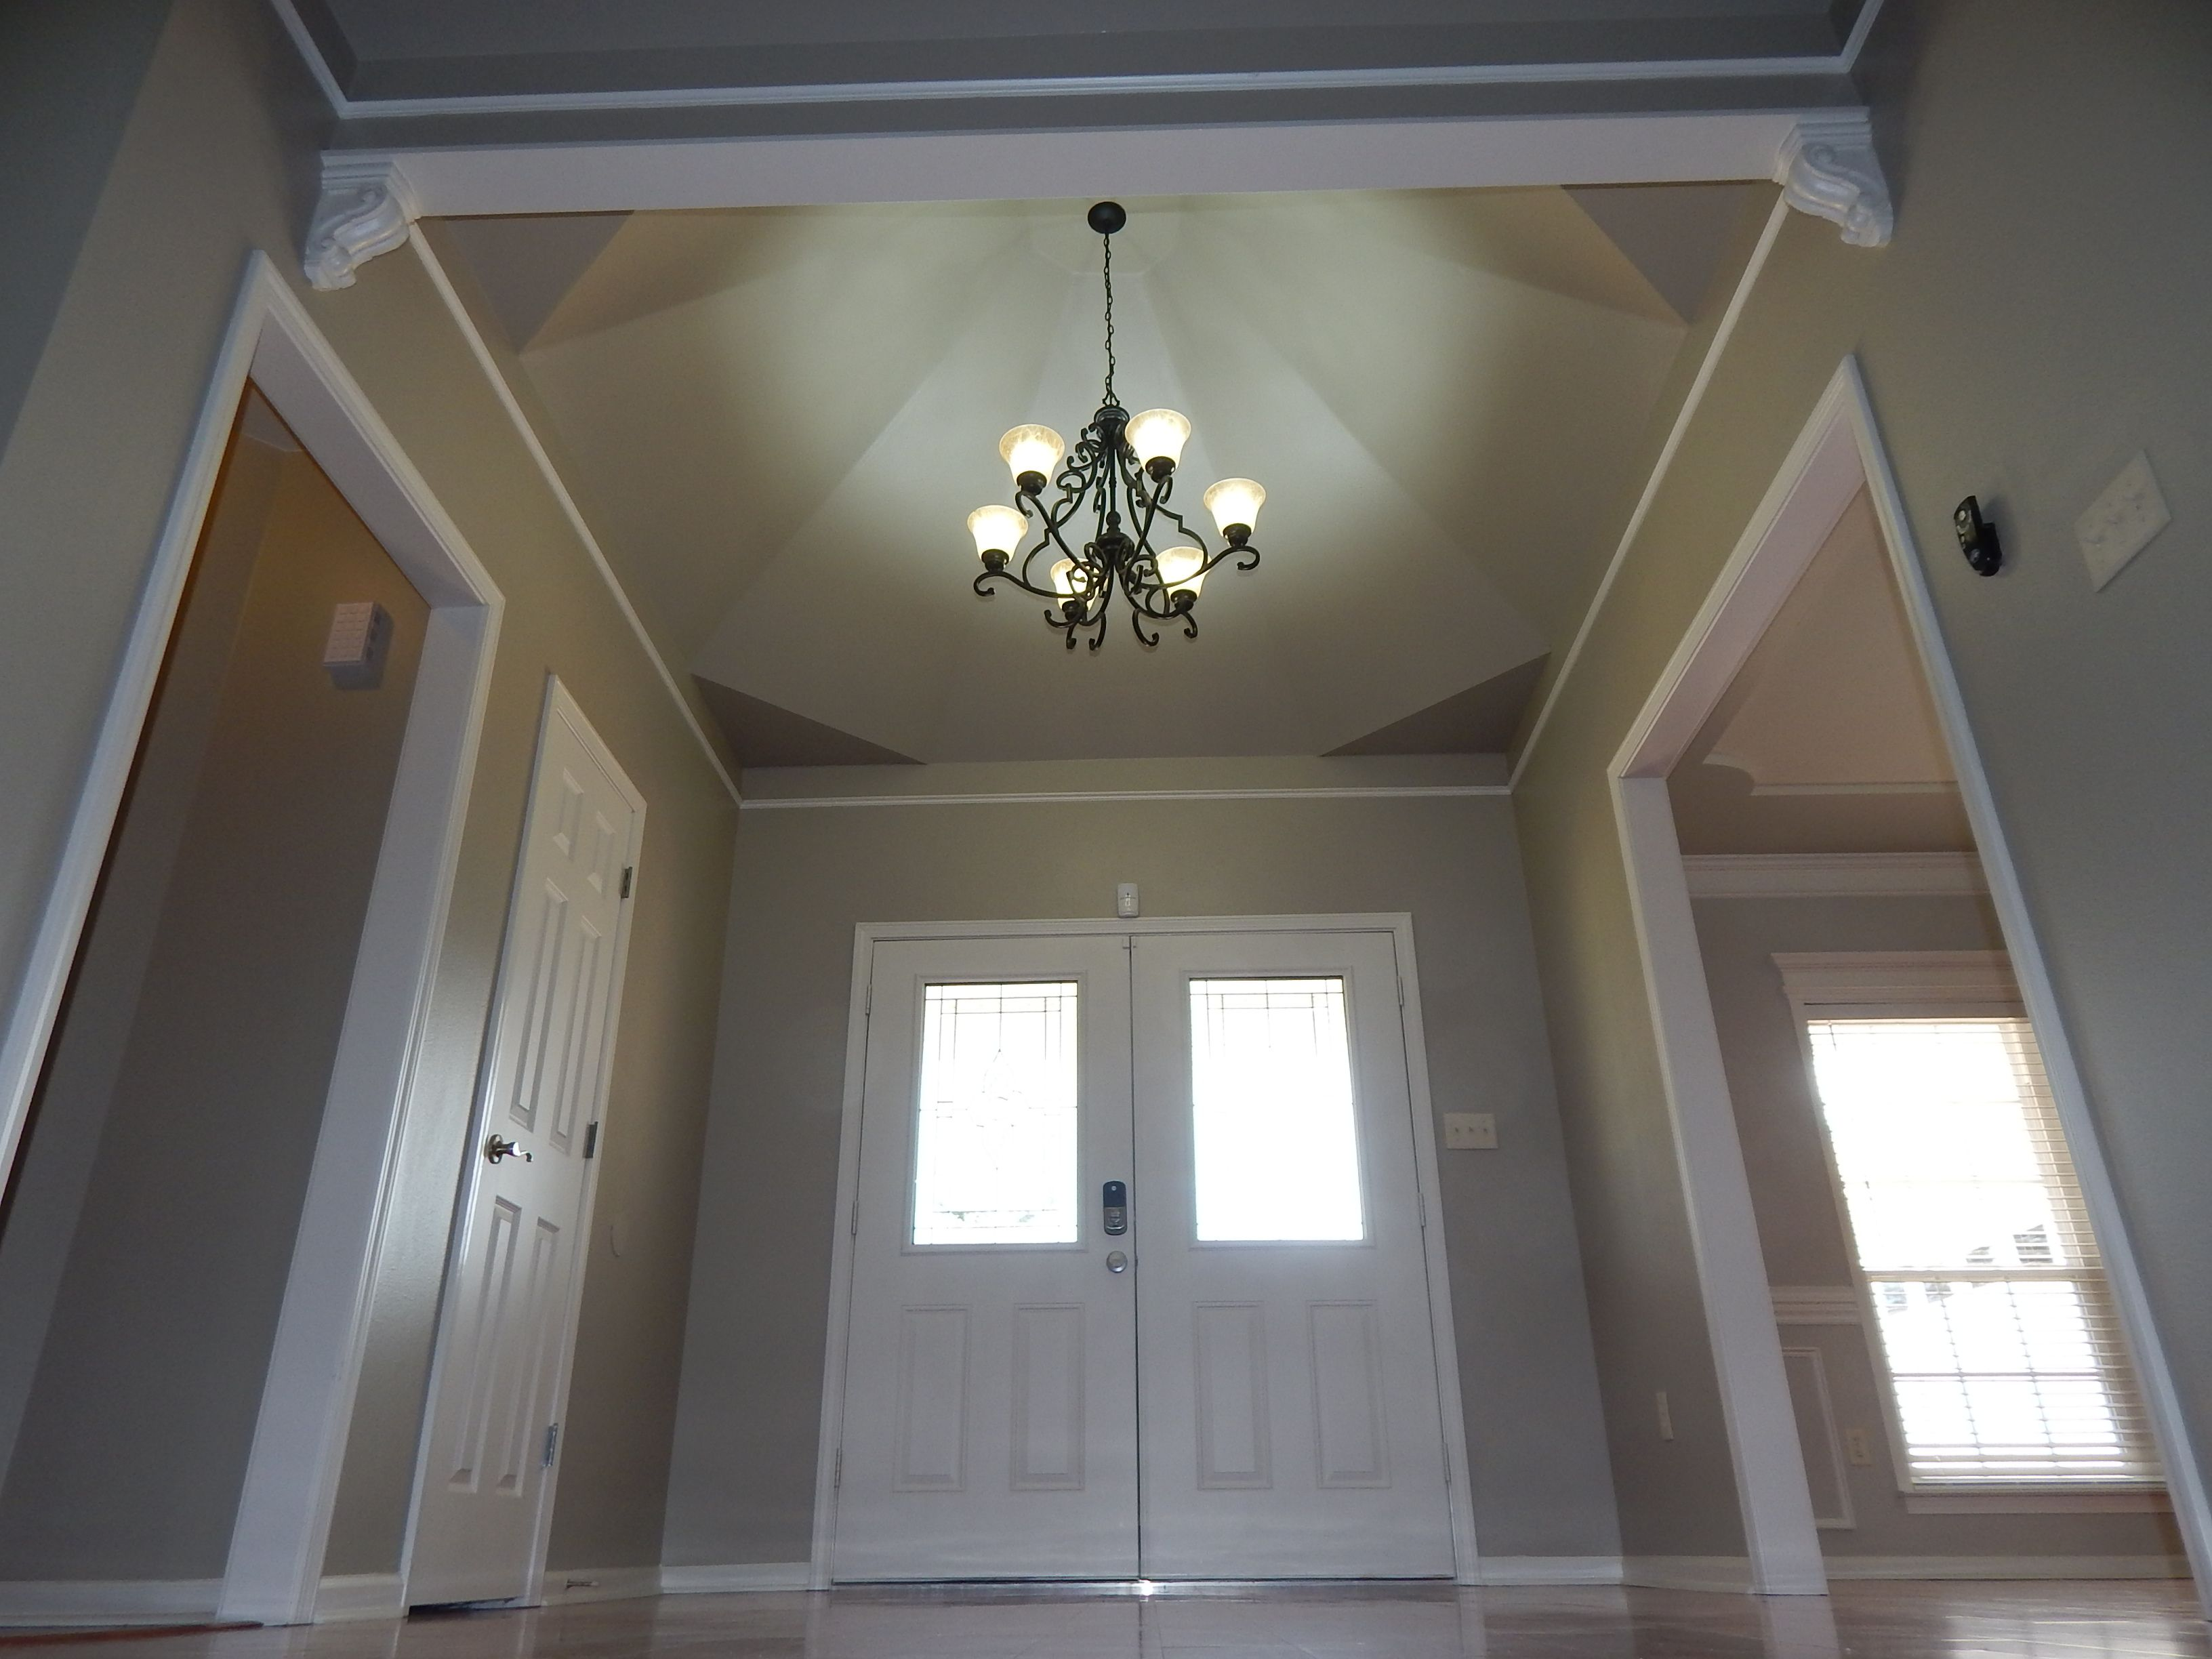 walls: sherwin williams amazing gray sw 7044 trim: sherwin ... - photo#6